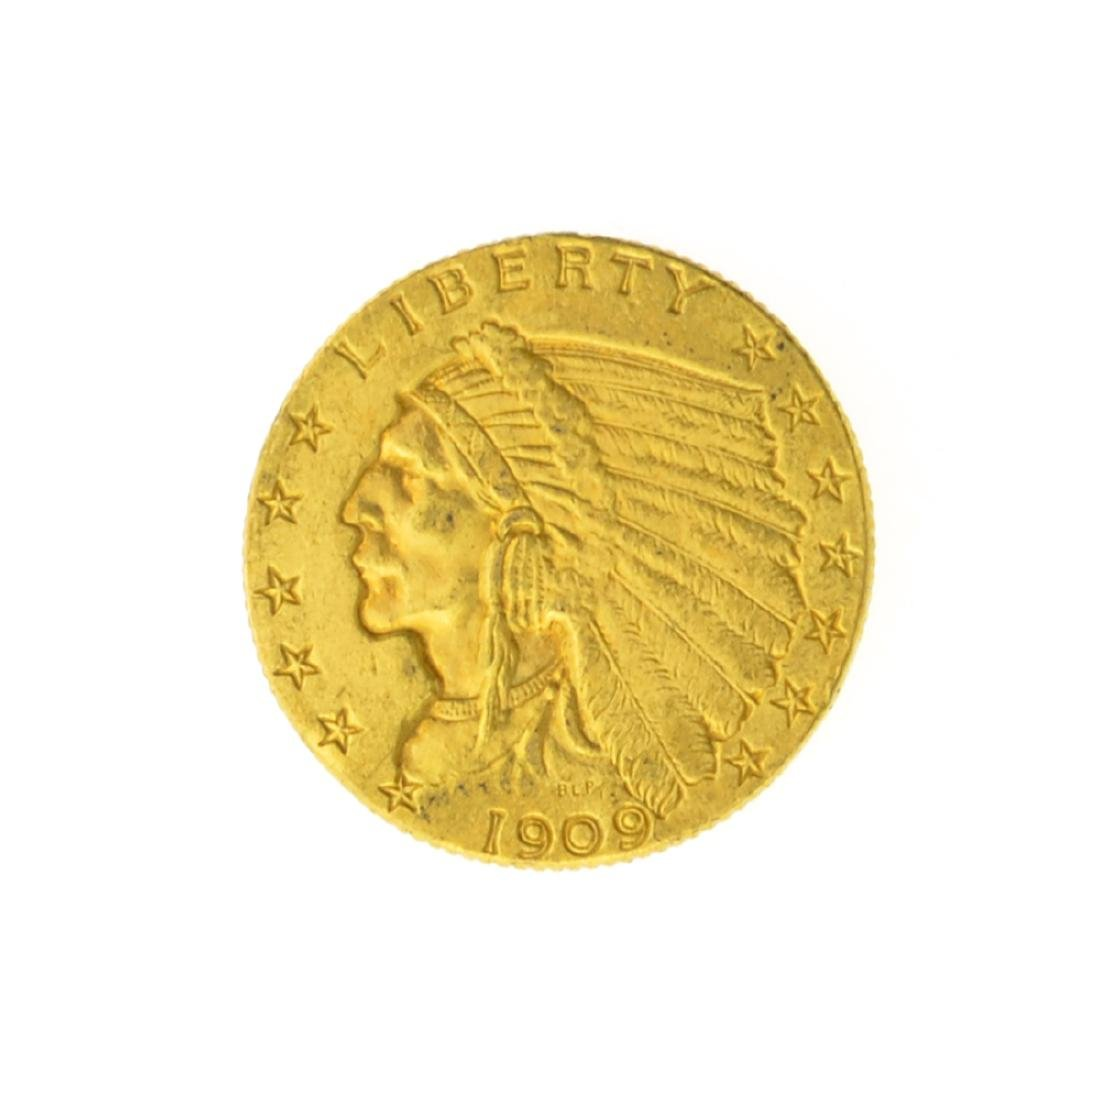 *1909 $2.50 U.S. Indian Head Gold Coin (JG)